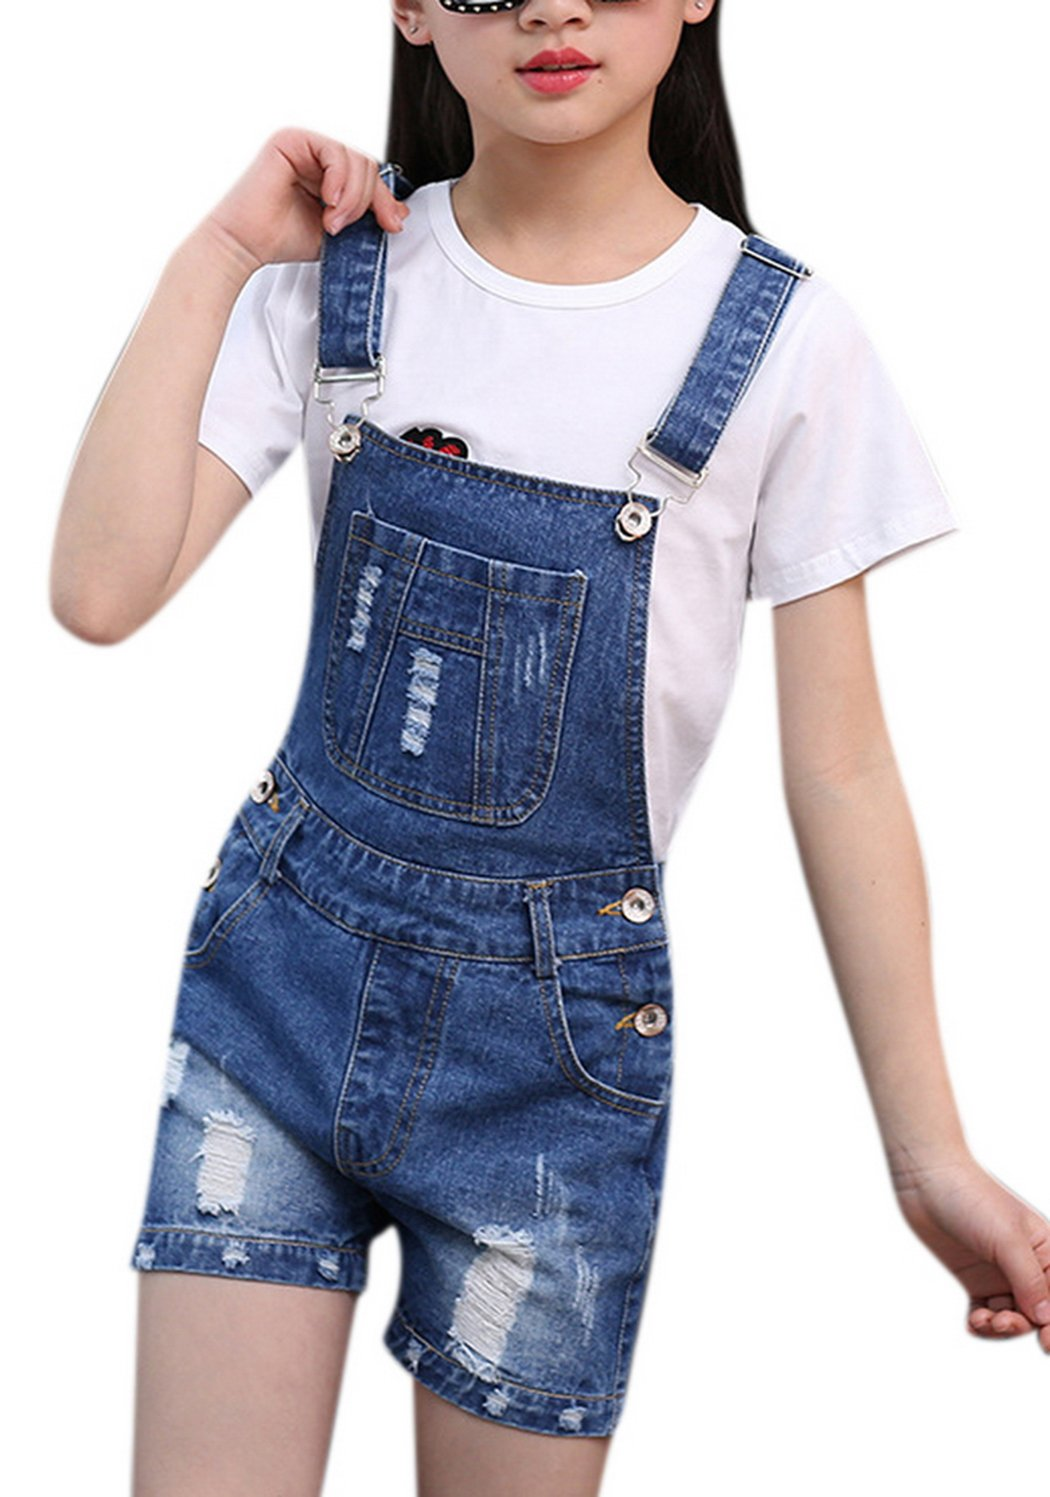 Luodemiss Big Girl's Denim Jumpsuit Boyfriend Jeans Cool Fashion Denim Romper Shortalls 8 Blue